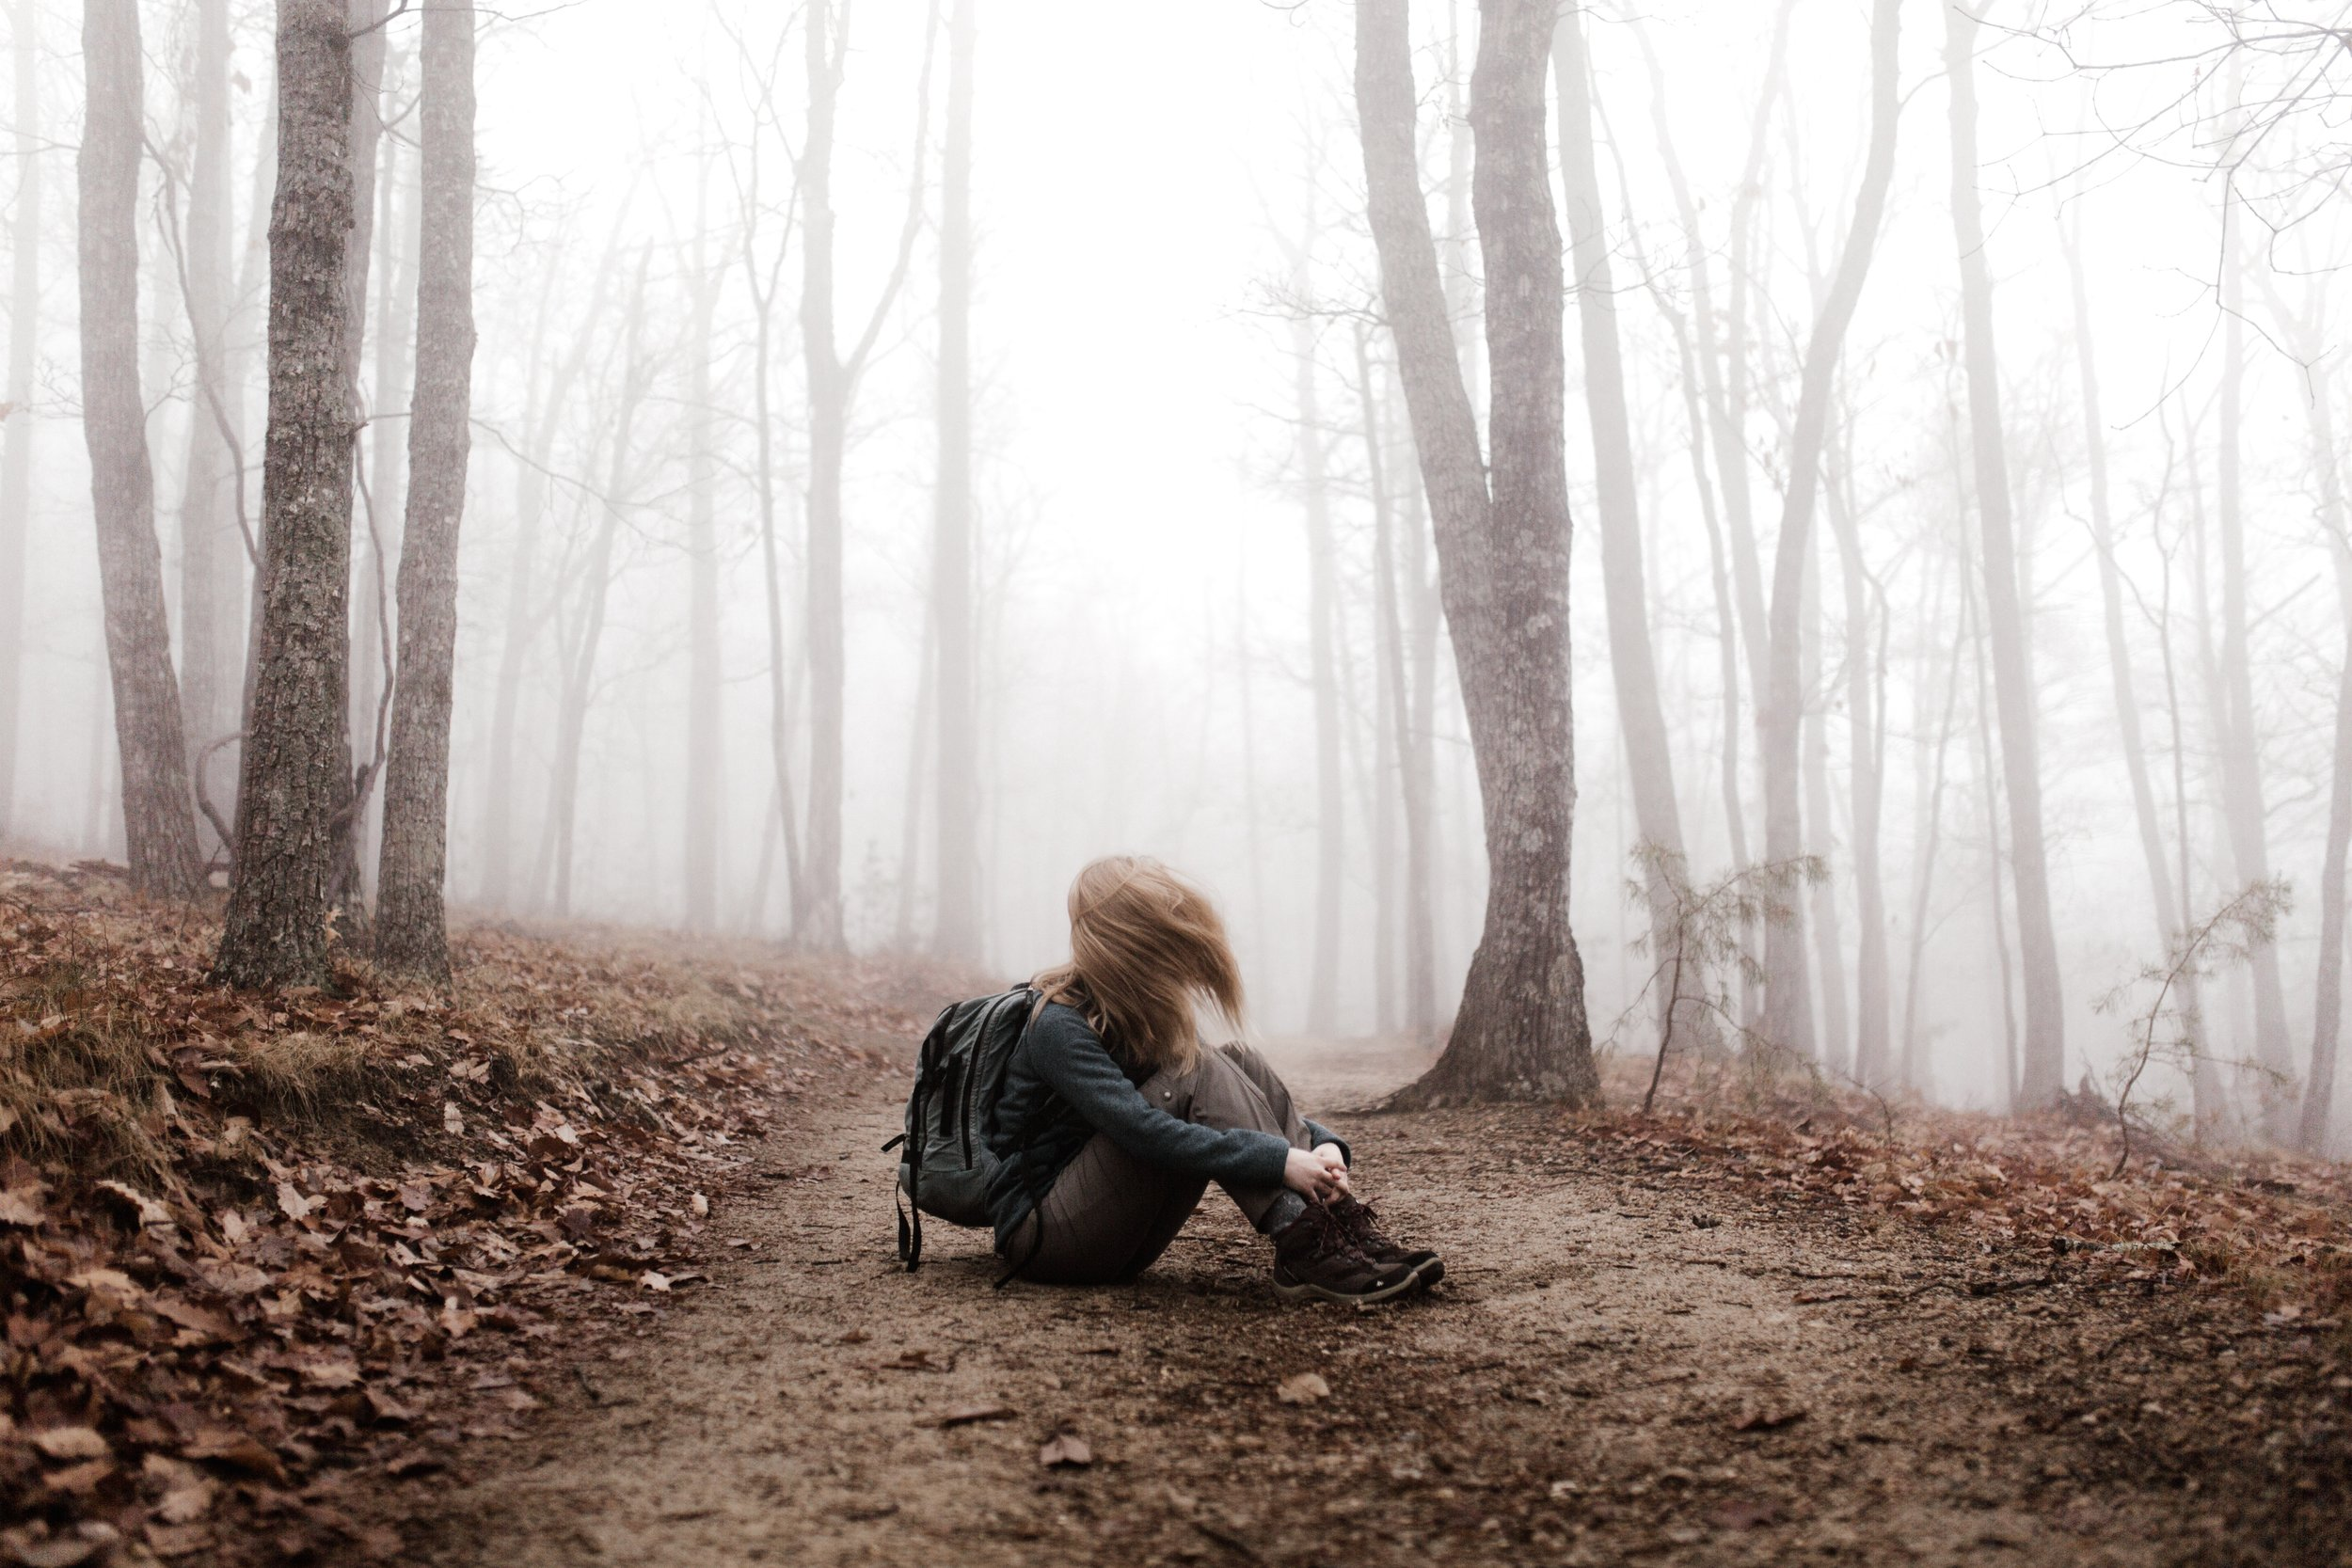 depressed woman sitting on dirt path in foggy forest